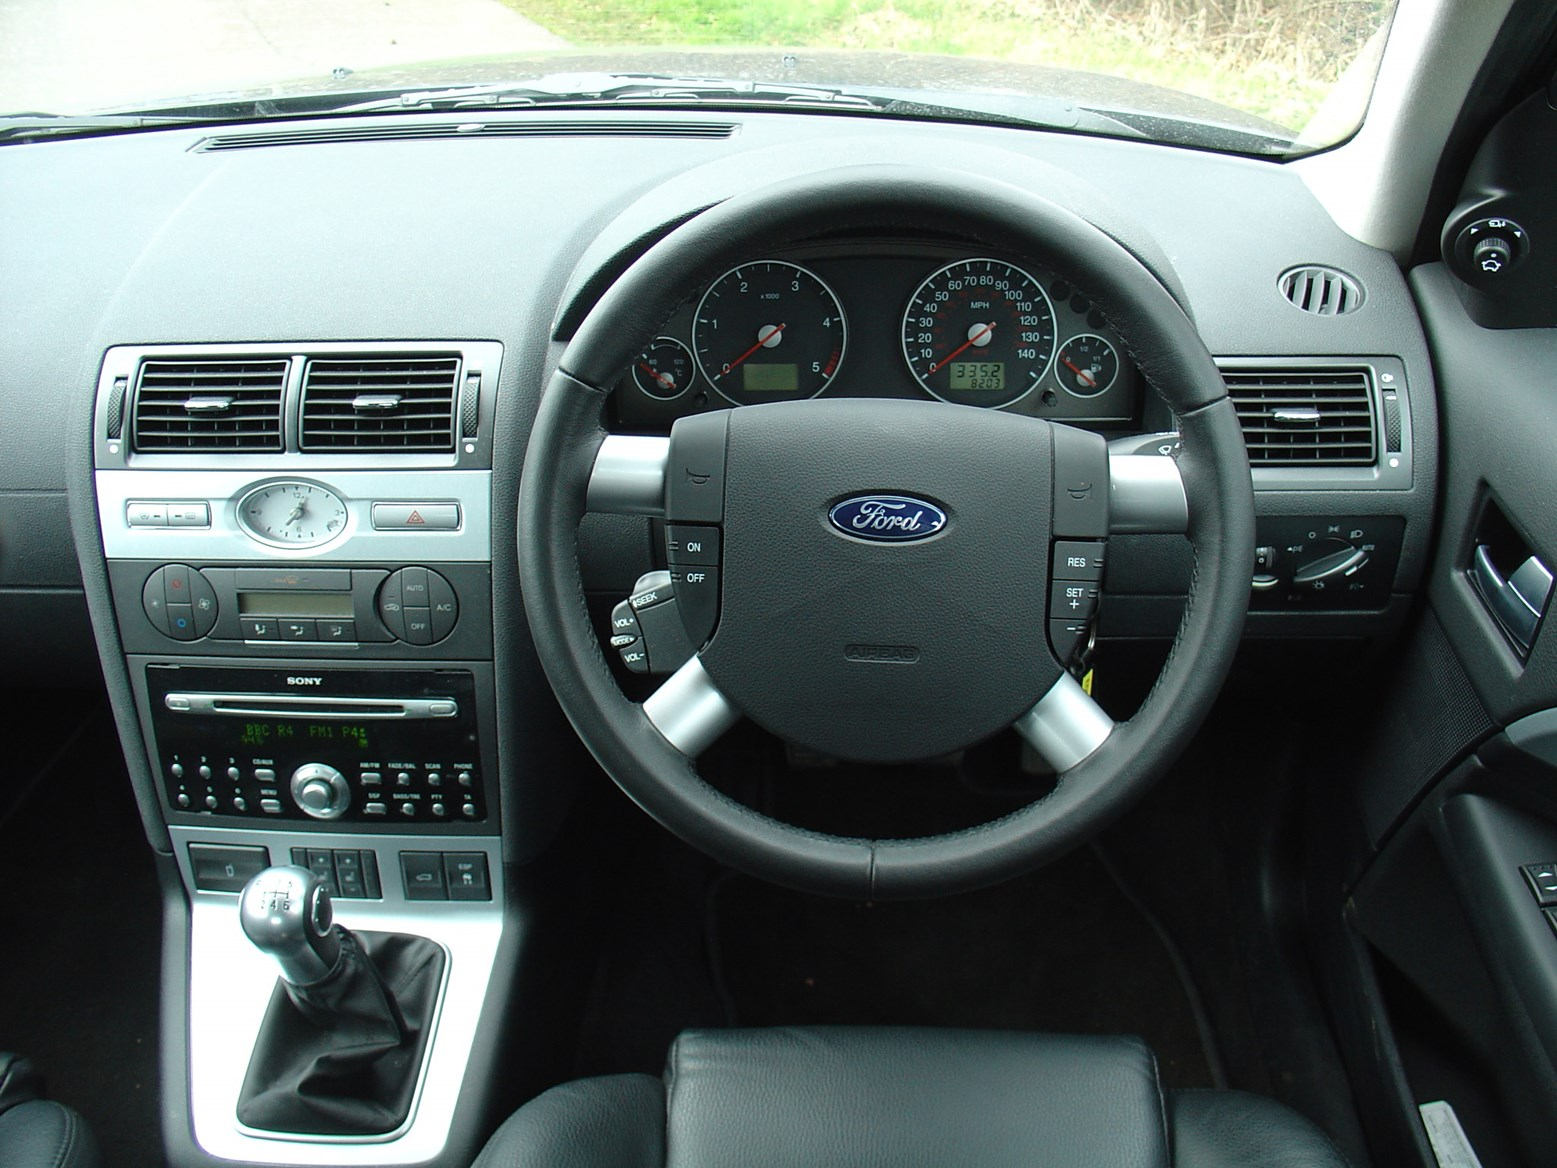 Used Ford Mondeo Hatchback (2000 - 2007) Review | Parkers